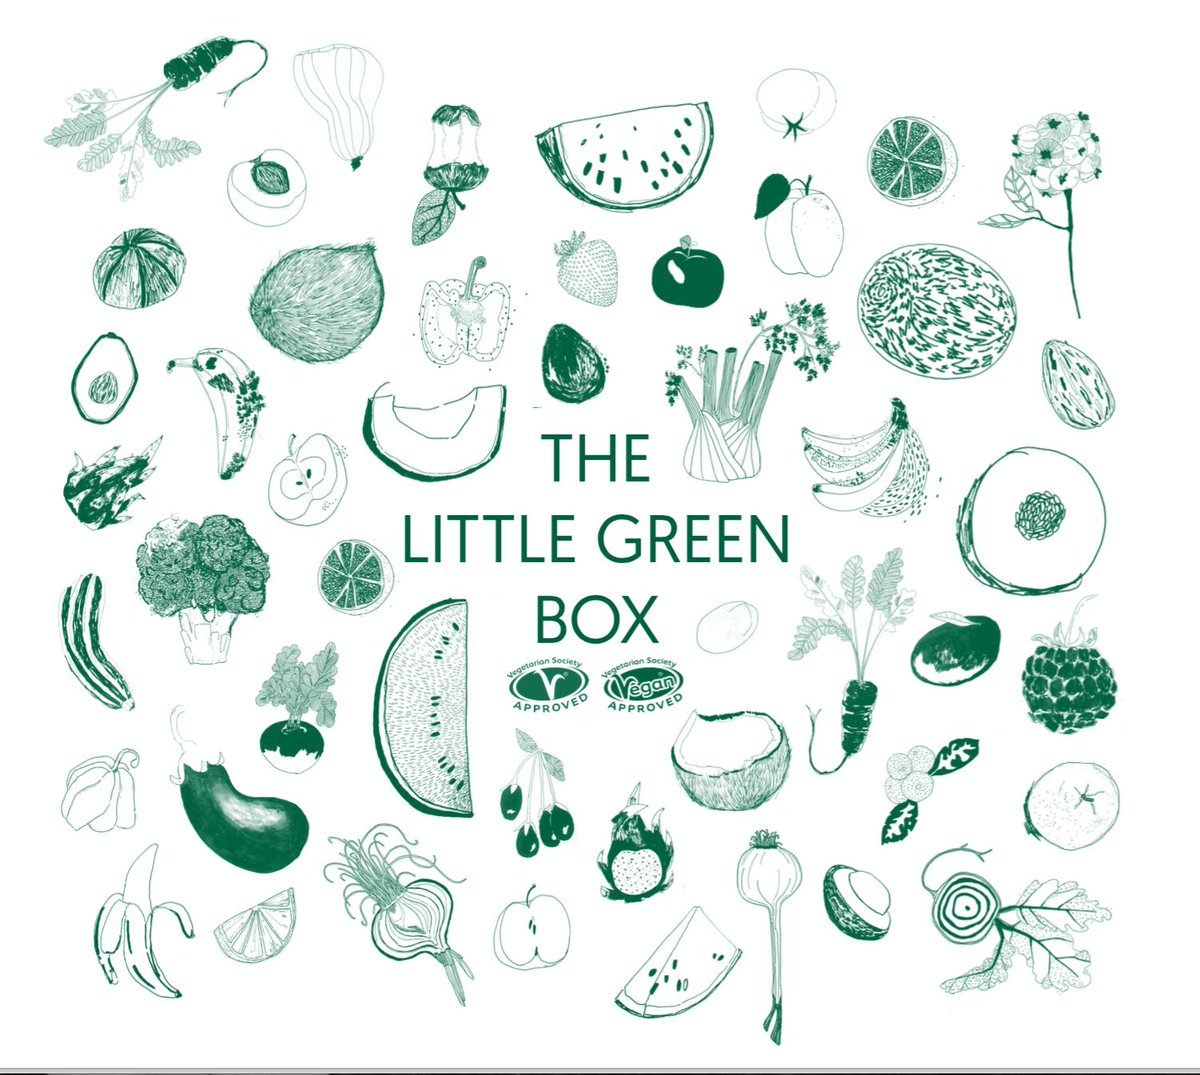 Not only does our #LittleGreenBox contain 13 veggie and vegan treats, we've also added an envelope packed full of vouchers to help students with their first shop! If your'e at @Liverpooljohnmoors @UniofNottingham@sheffielduni look out for a free veggie pie from@pieminister 🌿